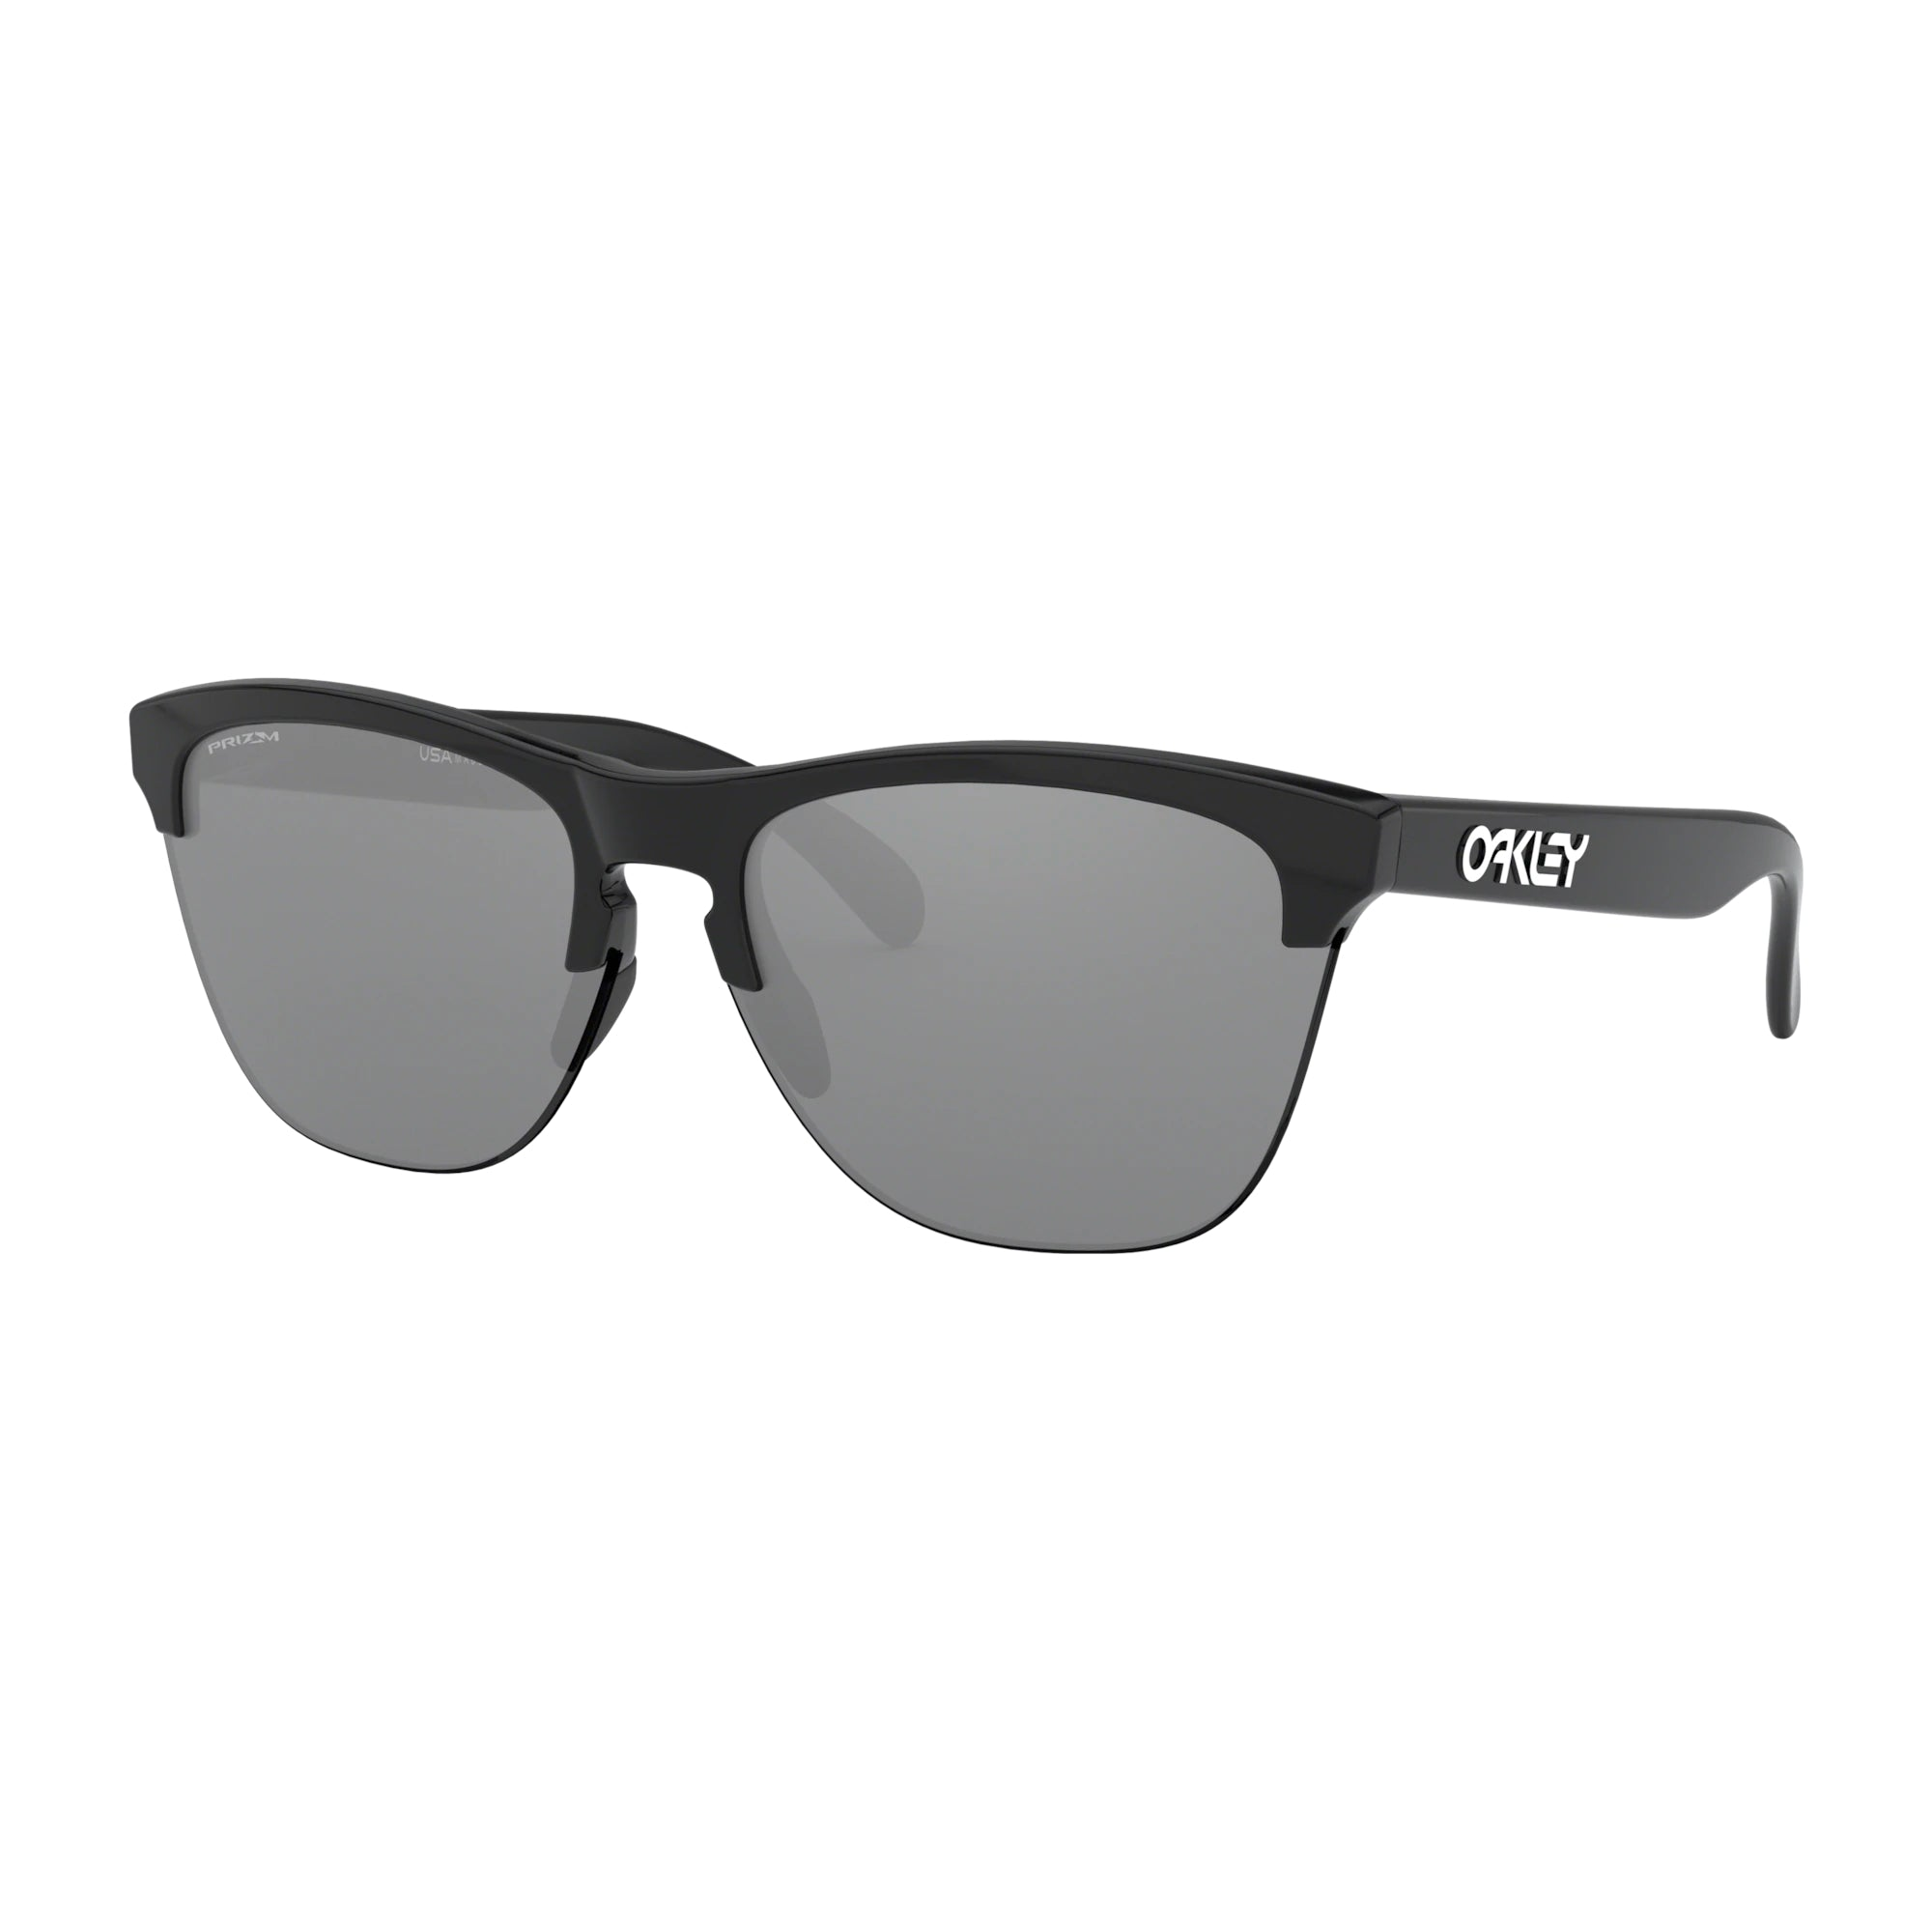 Oakley Frogskins Lite Men's Sunglasses - Polished Black Frame/Prizm Black Lens